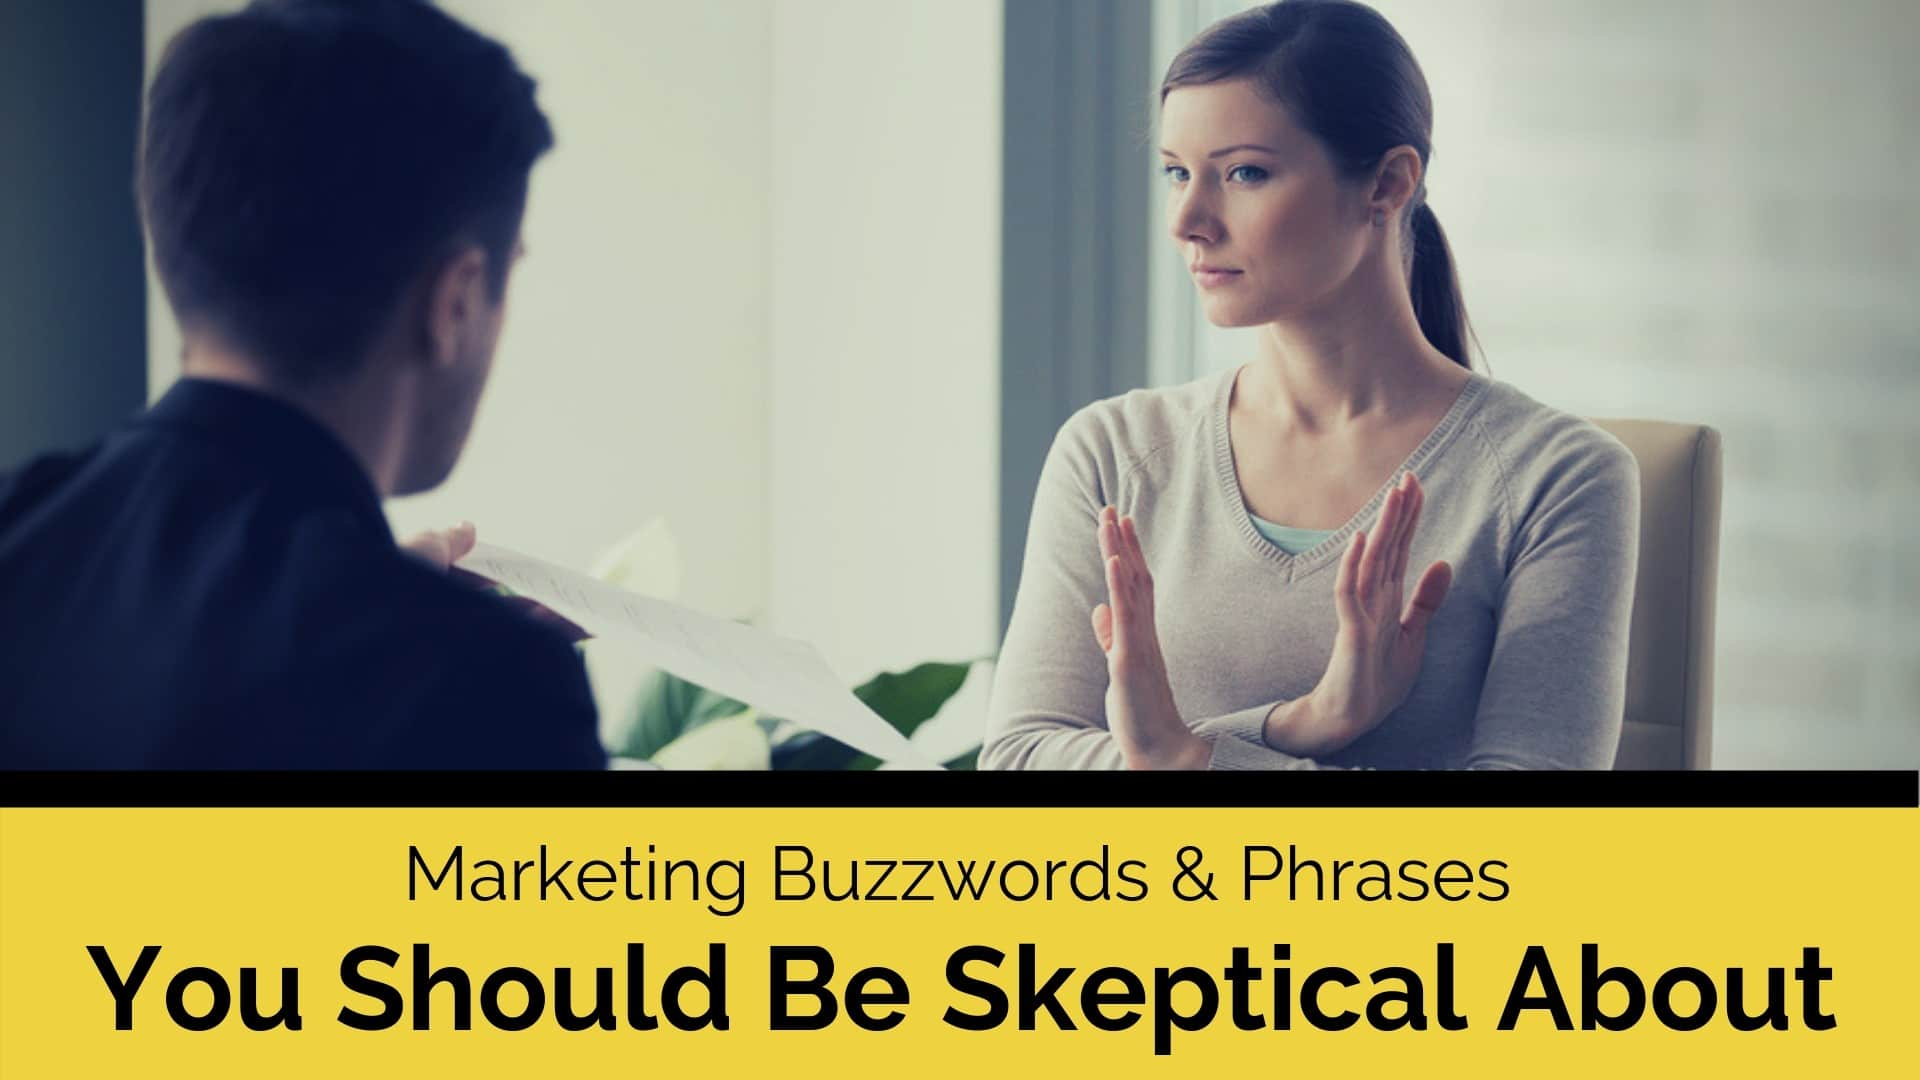 woman listening to a man say marketing buzzwords